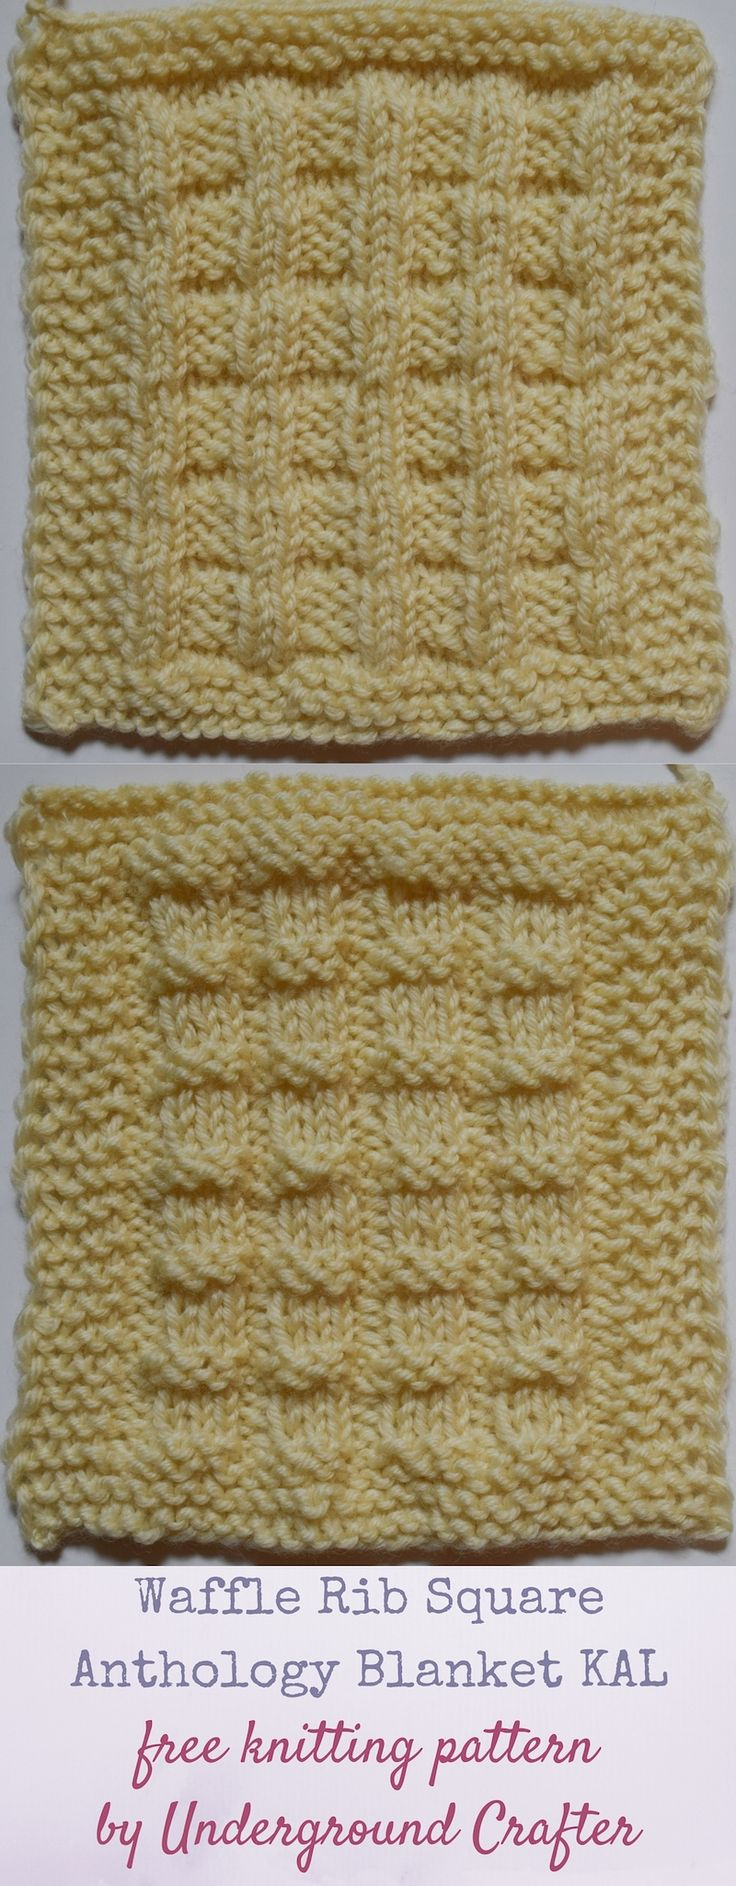 "Waffle Rib Square, free knitting pattern by Underground Crafter | This variation on ribbing is also reversible. The Waffle Rib Square is one of 30 free knitting patterns for 6"" (15 cm) squares in the Anthology Blanket KAL."